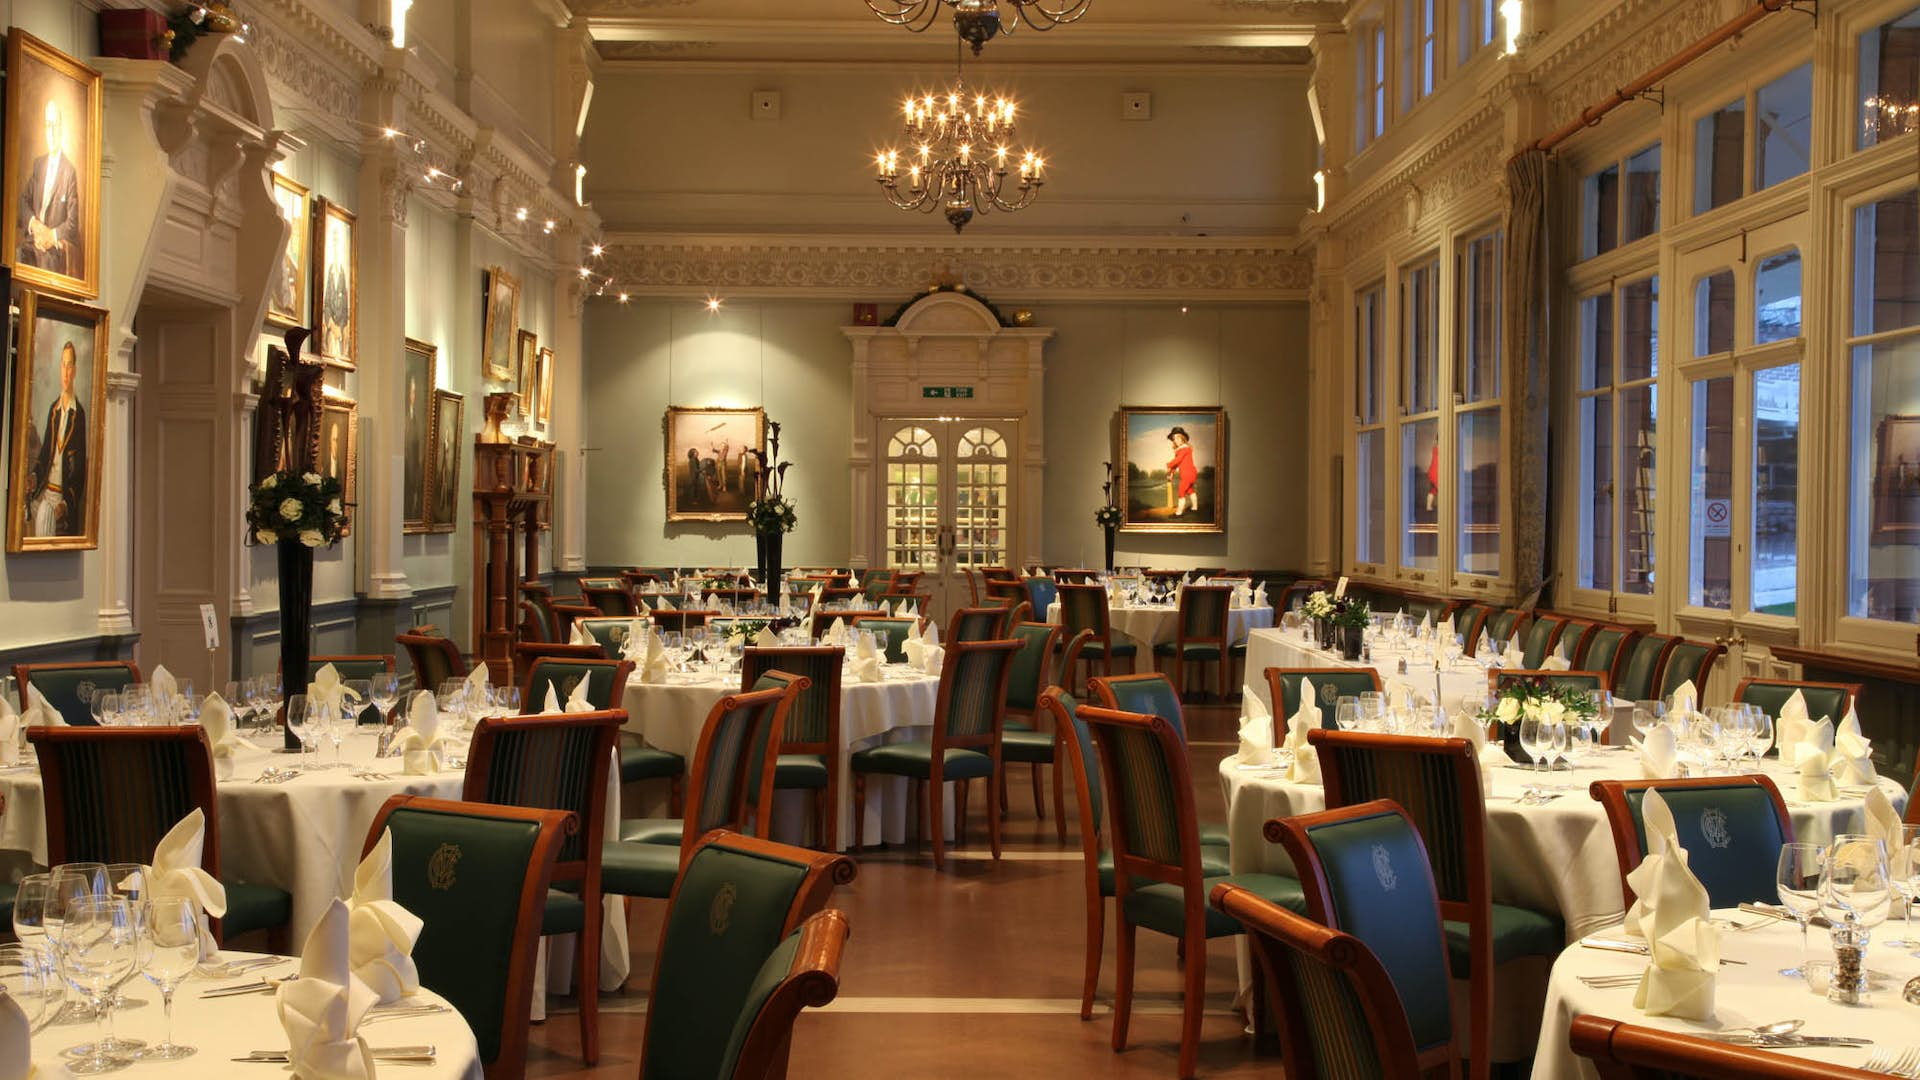 The long room dining hire lord 39 s cricket ground for Q dining room london